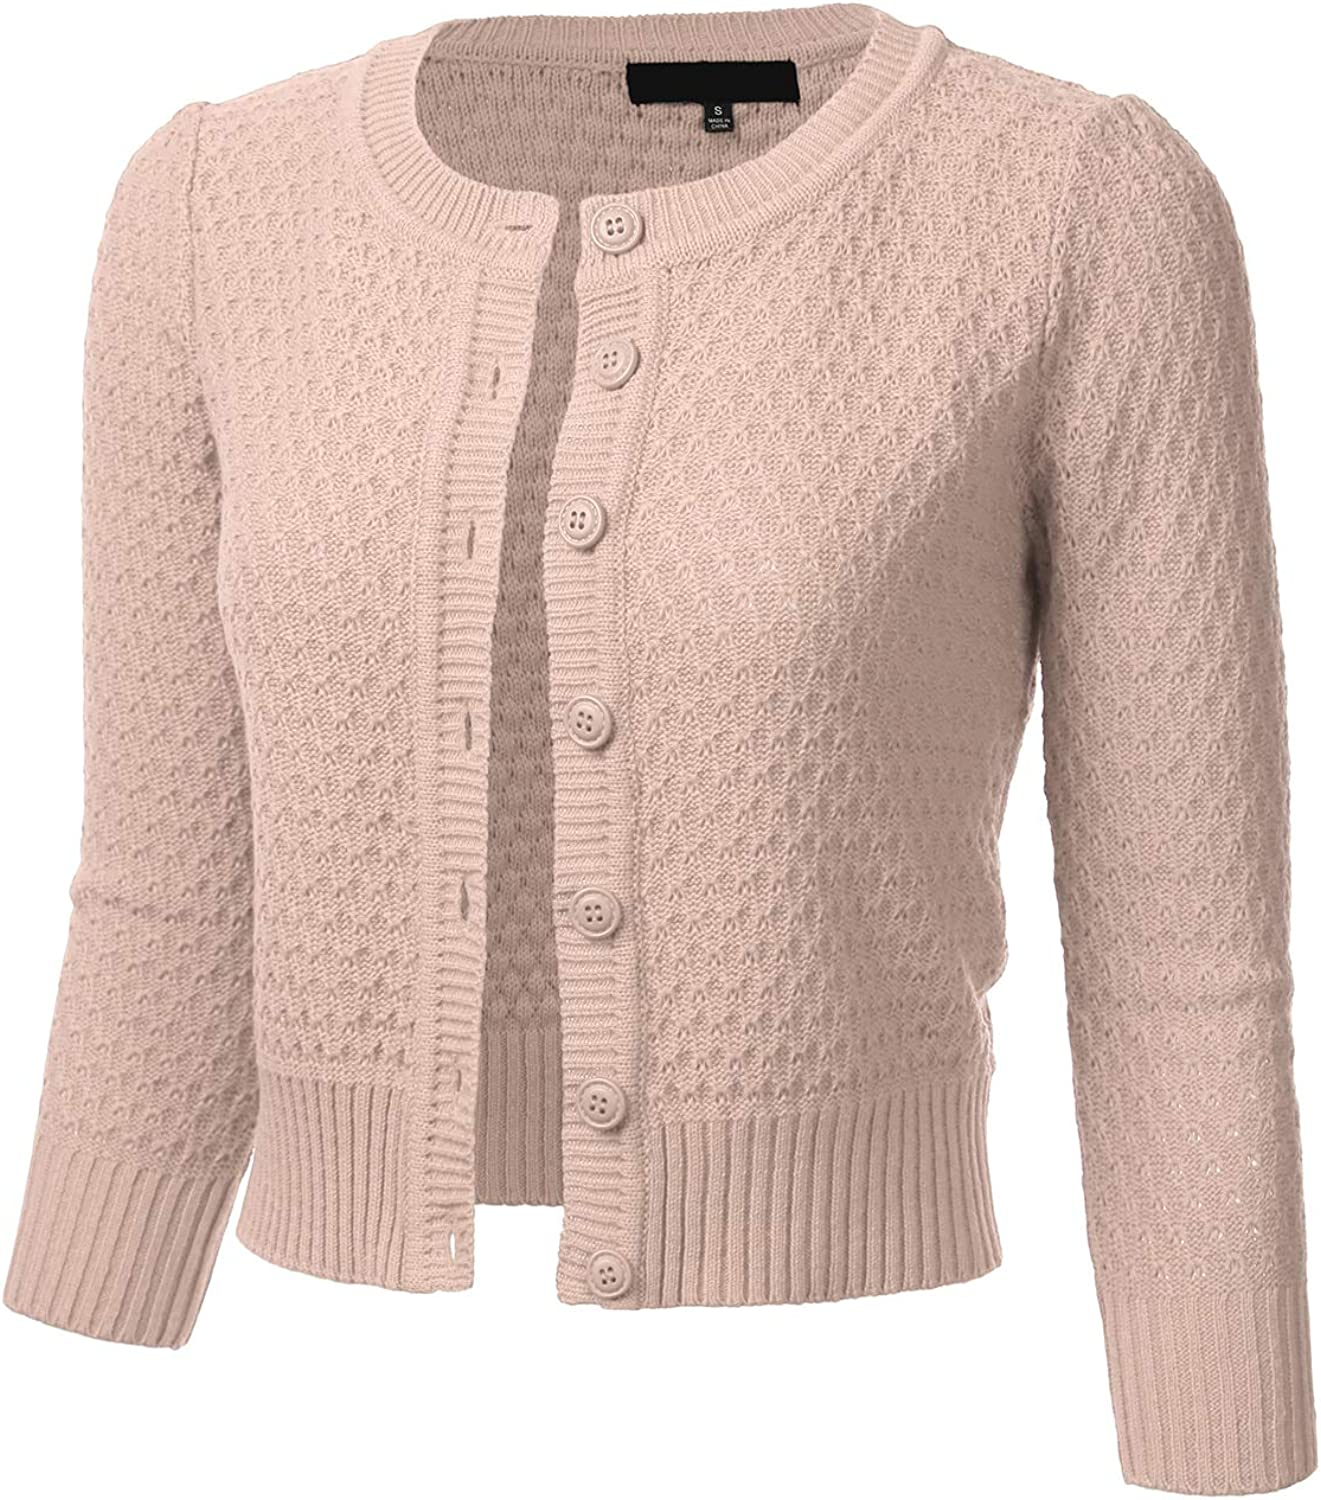 FLORIA Women's Button Down 3/4 Sleeve Crew Neck Cotton Knit Cropped Cardigan Sweater (S-3X)